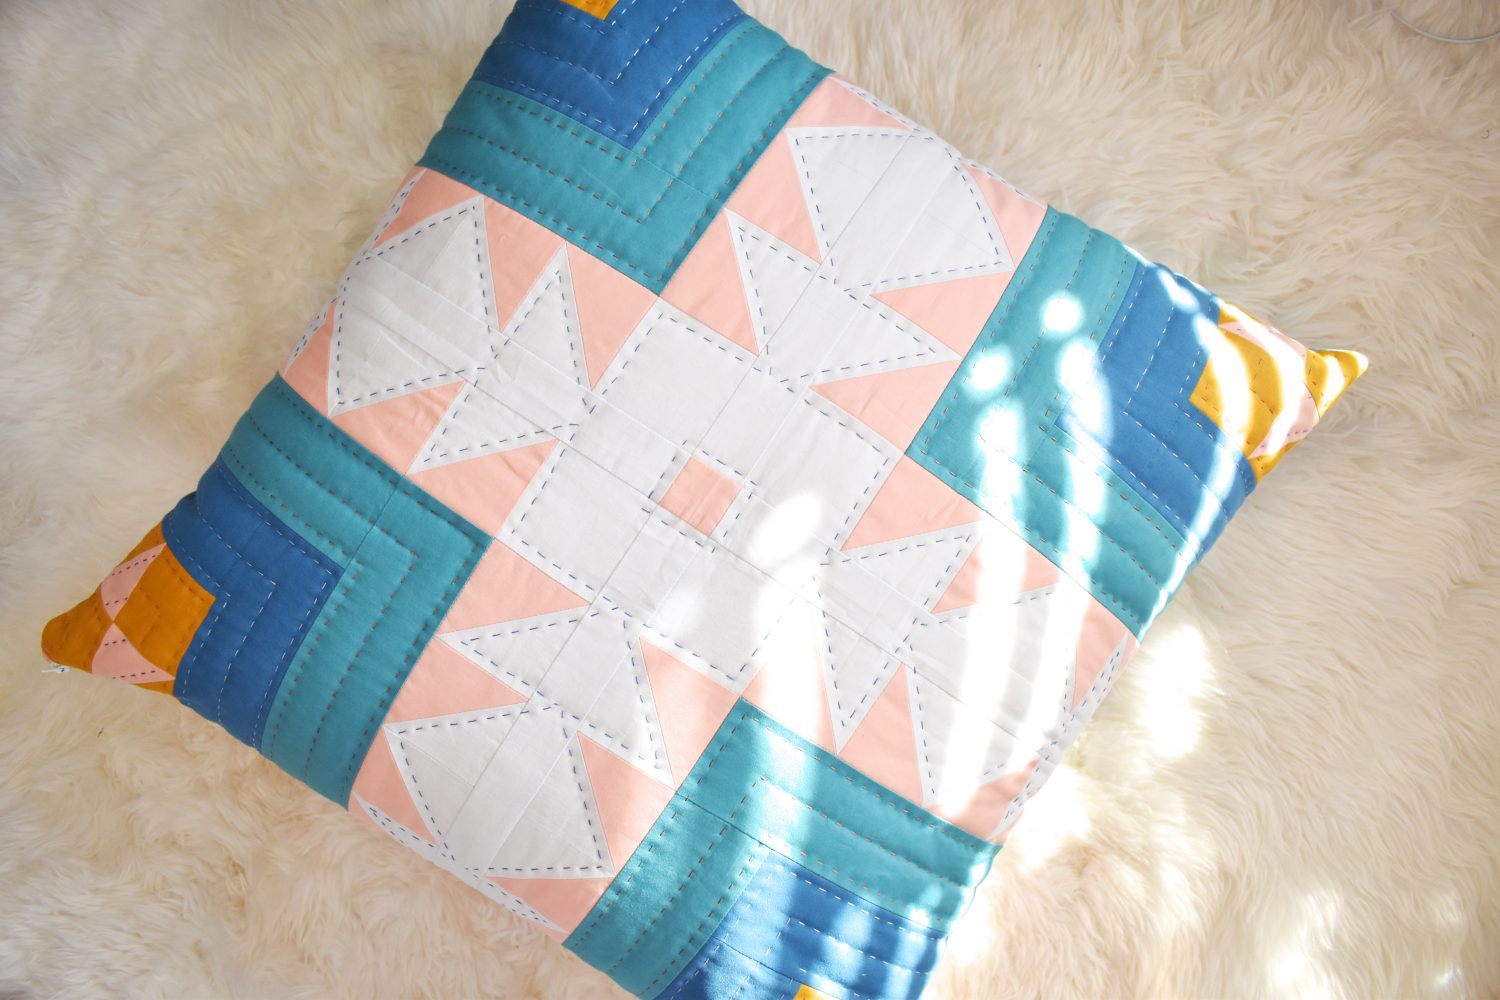 Create a floor pillow or dog bed for the perfect quilted decor!